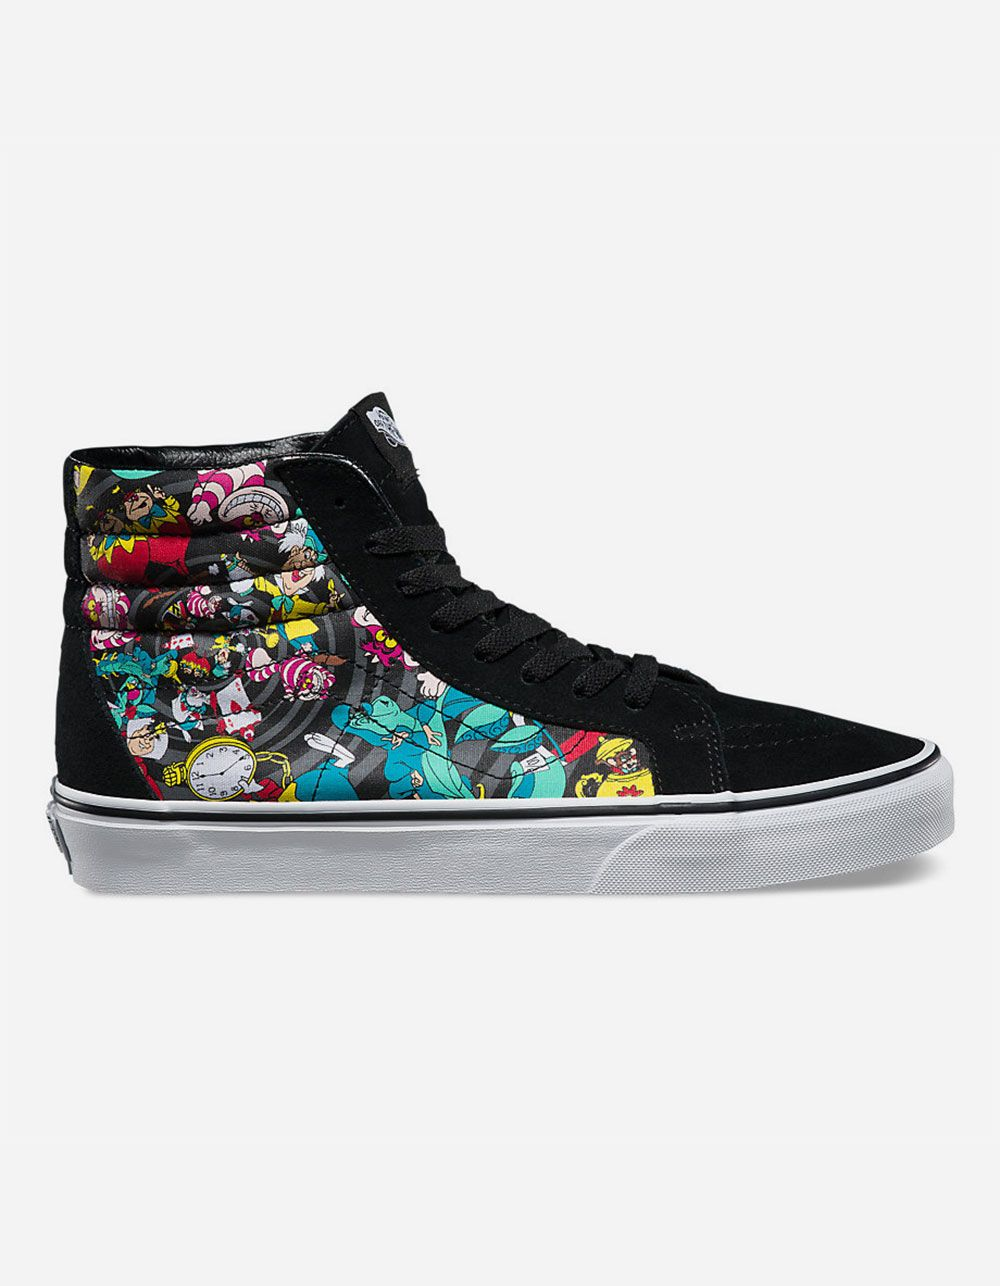 49ea15e1425 womens 8.5 Disney Alice in wonderland Vans sk8-hi